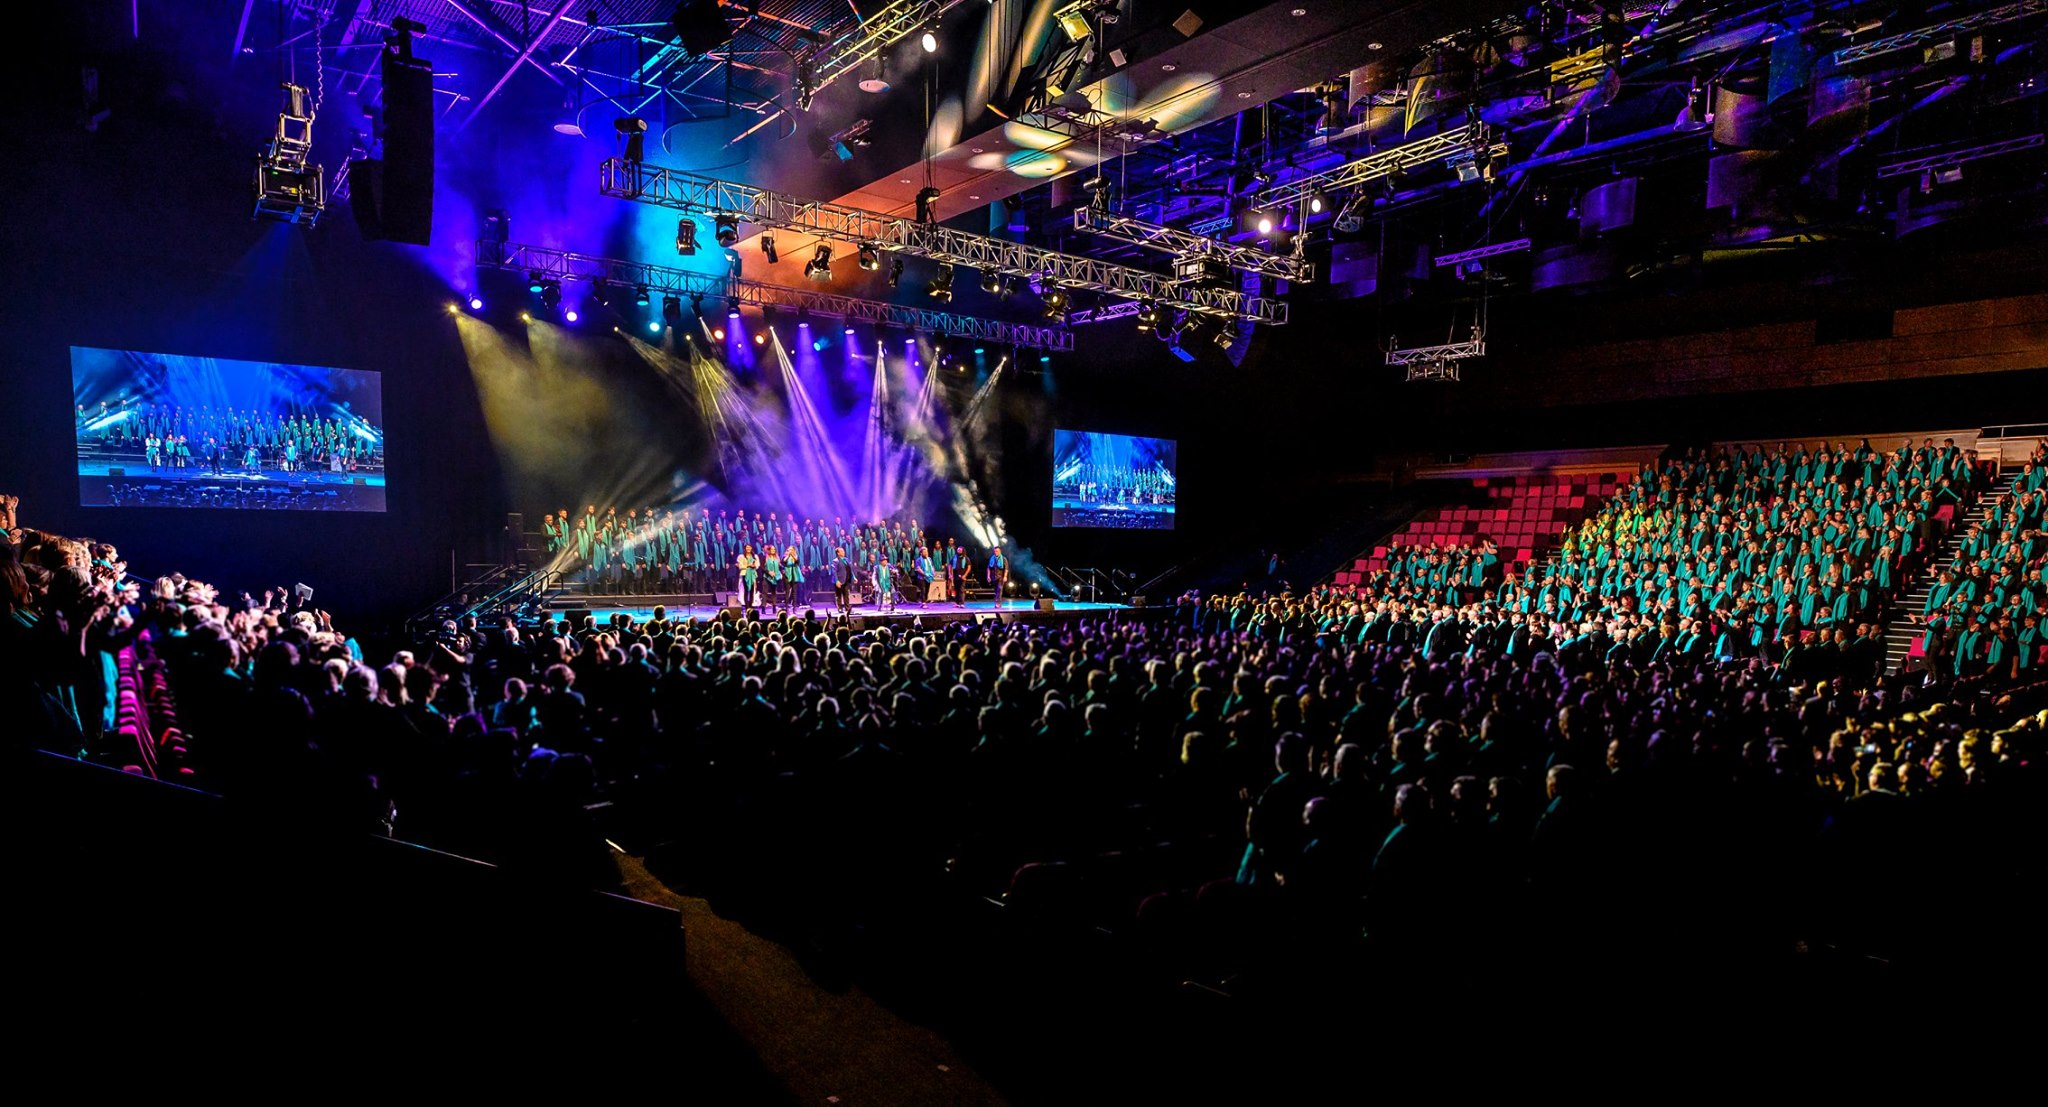 AMWChoir voices scattered throughout the massed choir at Brisbane Convention & Exhibition Centre